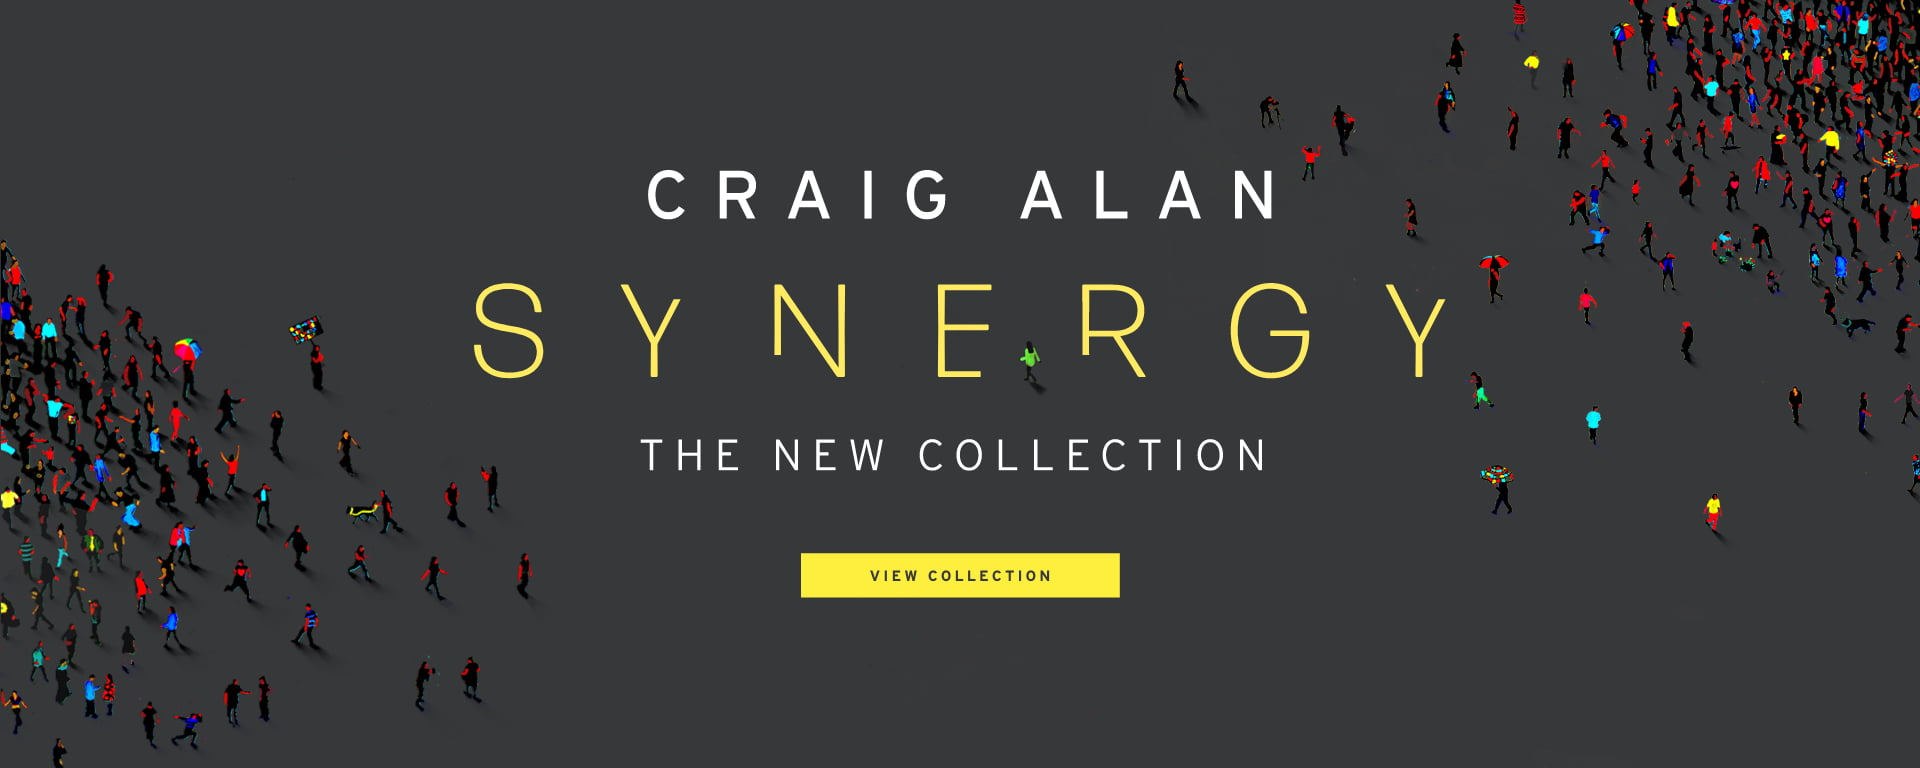 Craig Alan | Synergy